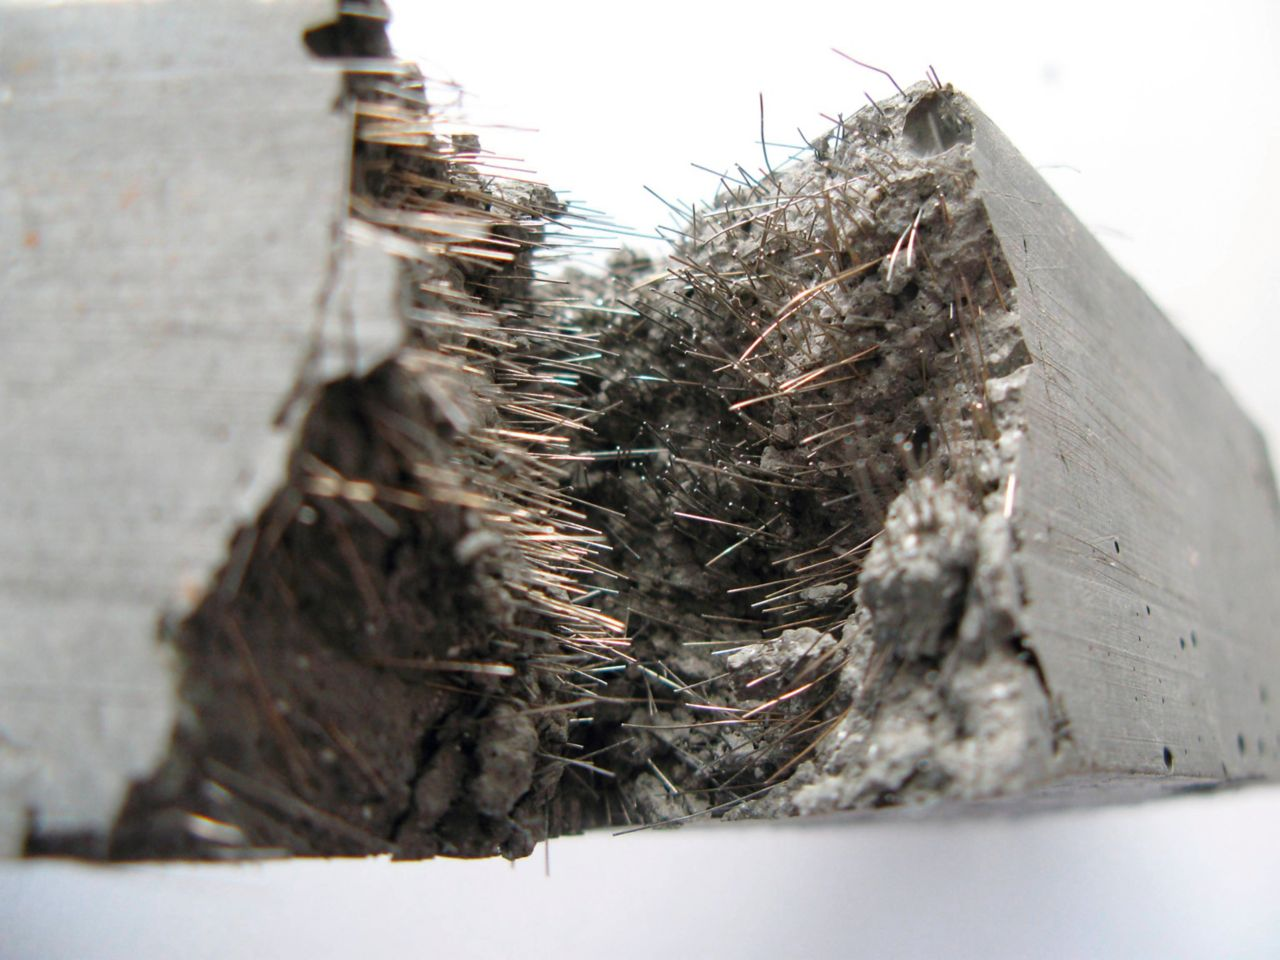 Fiber reinforced concrete block cut in half